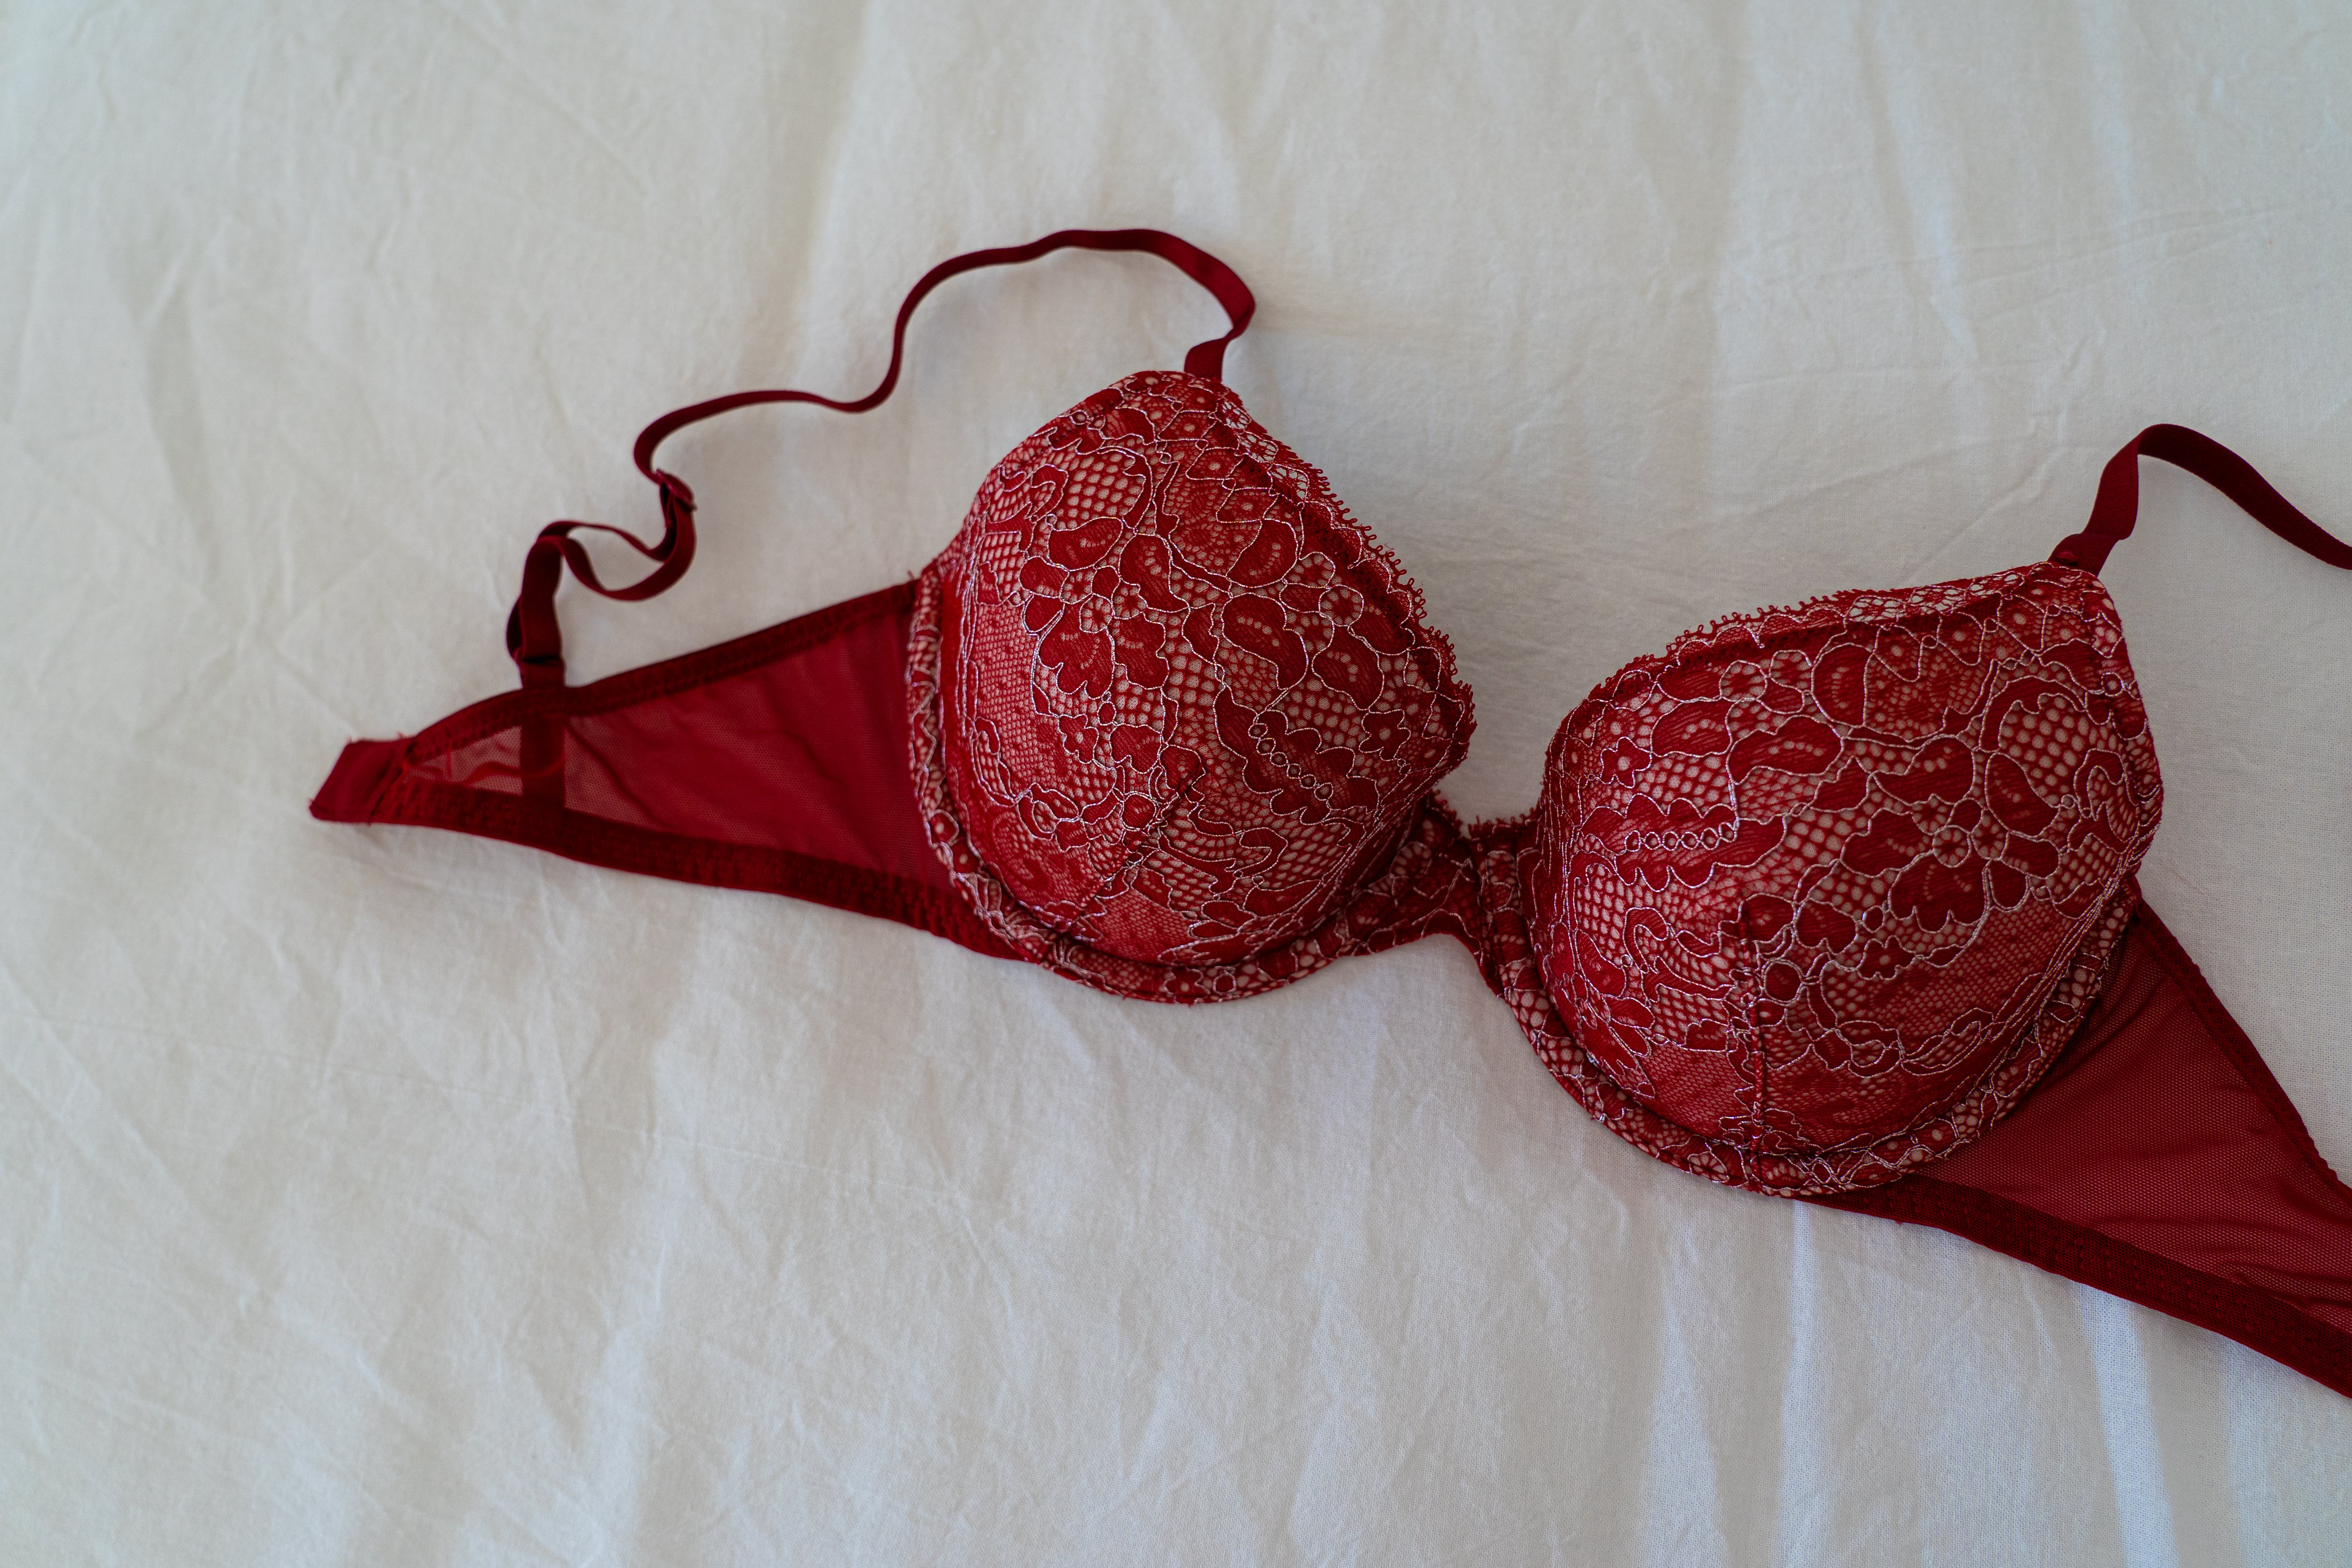 Red Brassiere on White Textile